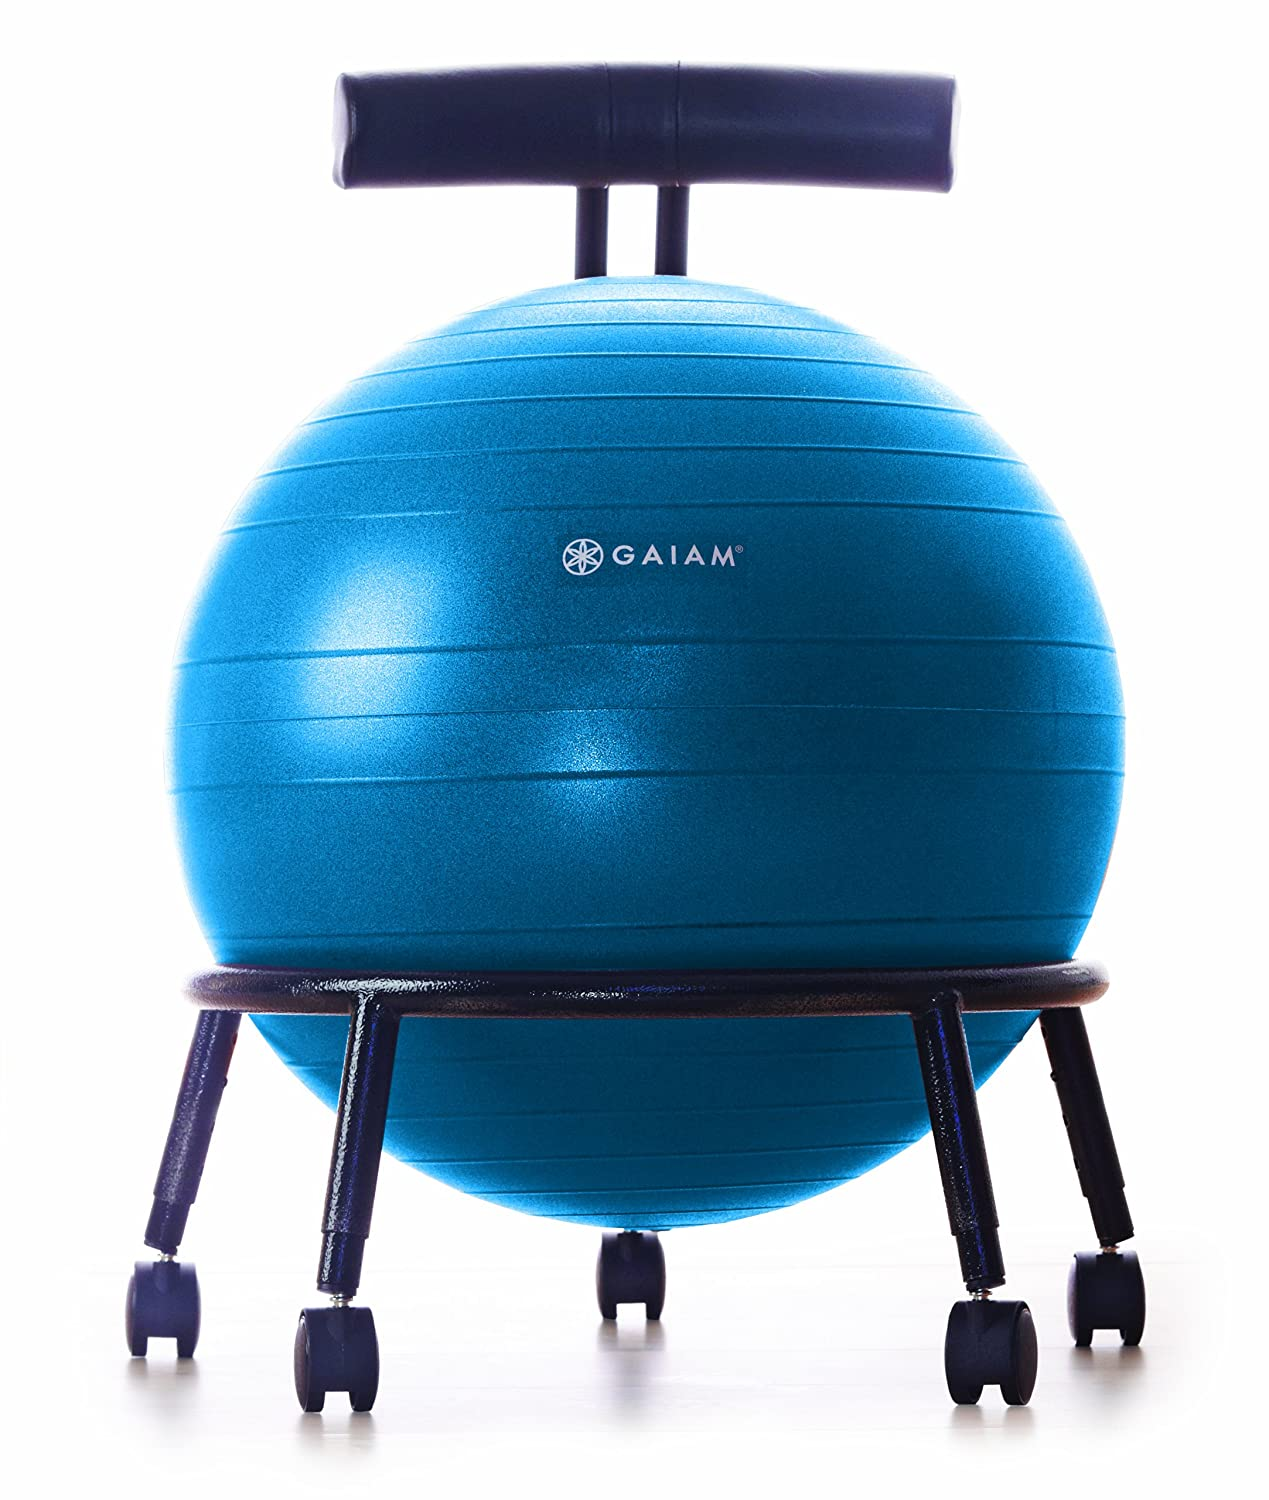 Pilates Ball Chair New Balance Ball Workout Chair Ergonomic Adjustable Desk